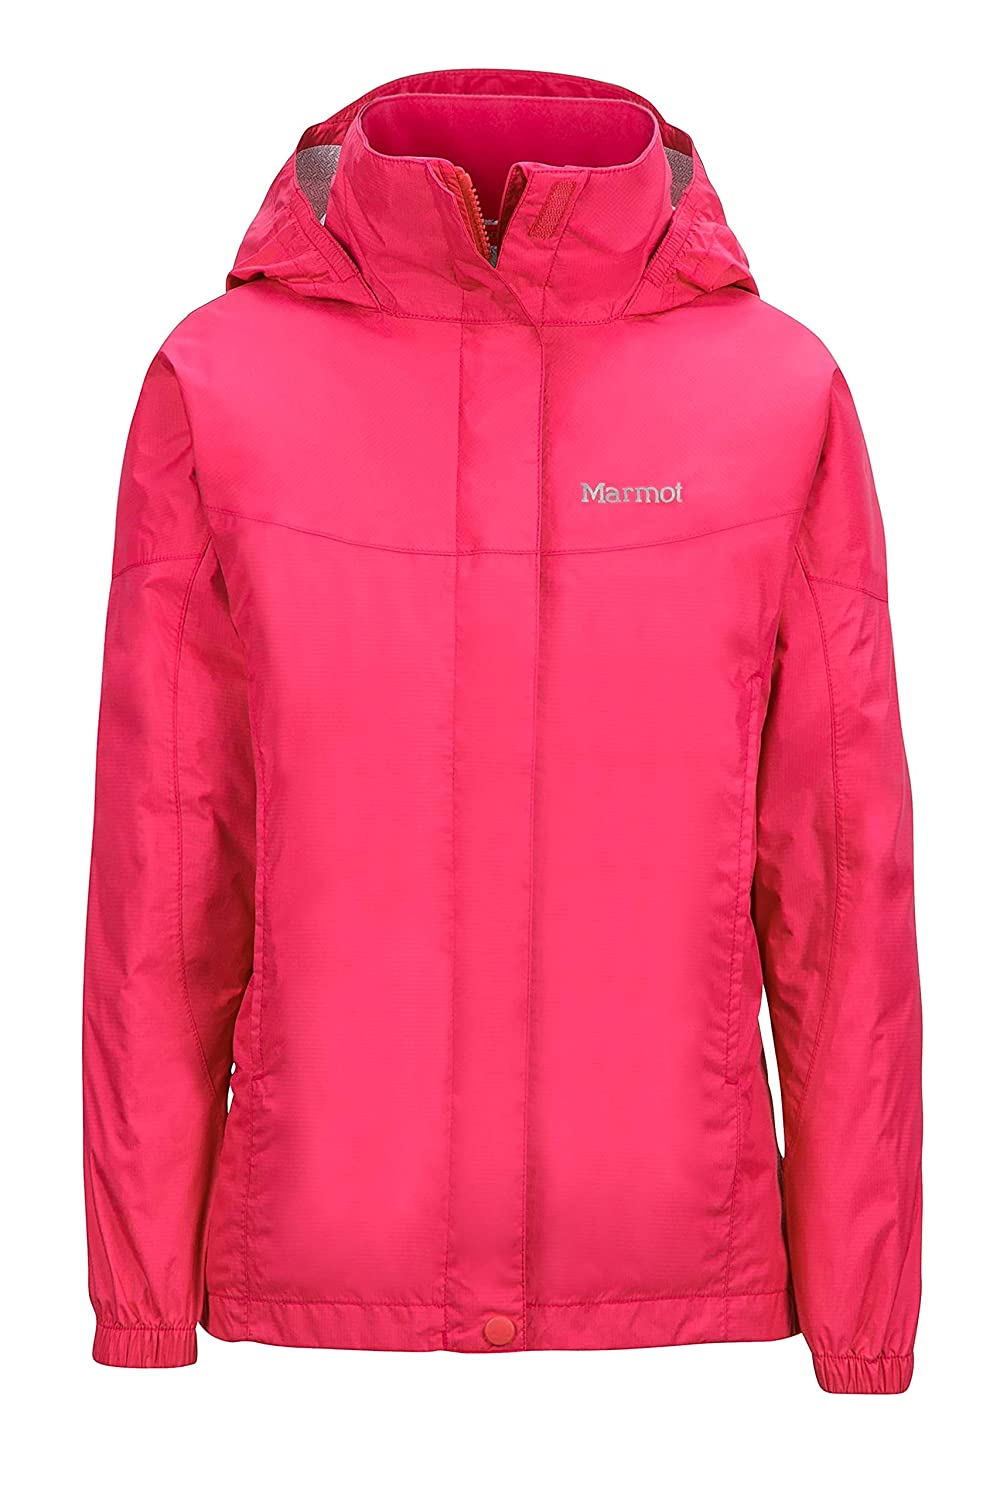 Marmot PreCip Girls' Lightweight Waterproof Rain Jacket Marmot Mountain B01N03GSMF-P